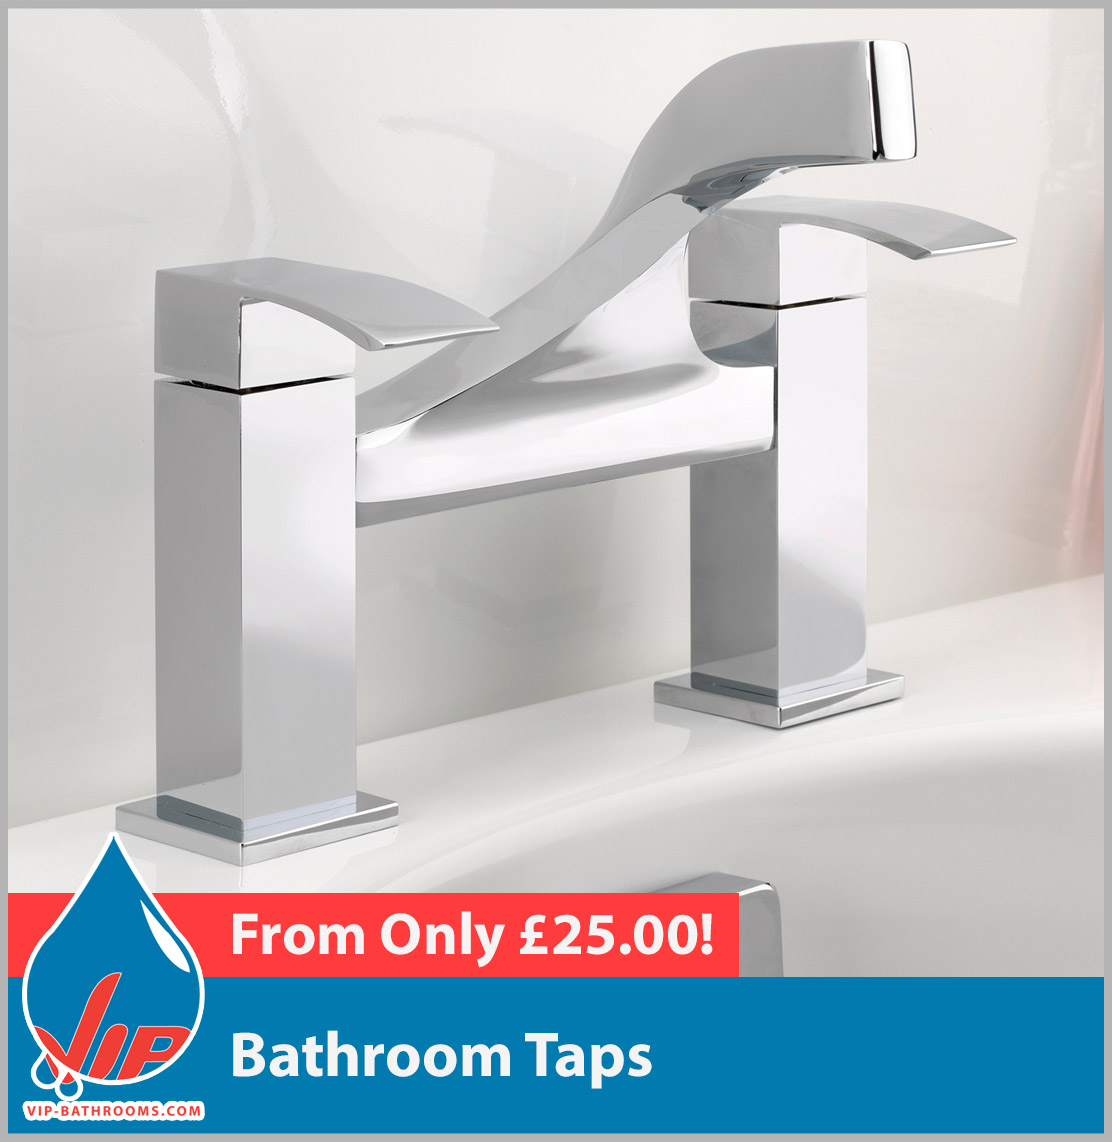 Click here to see our range of stylish designer Bathroom Taps